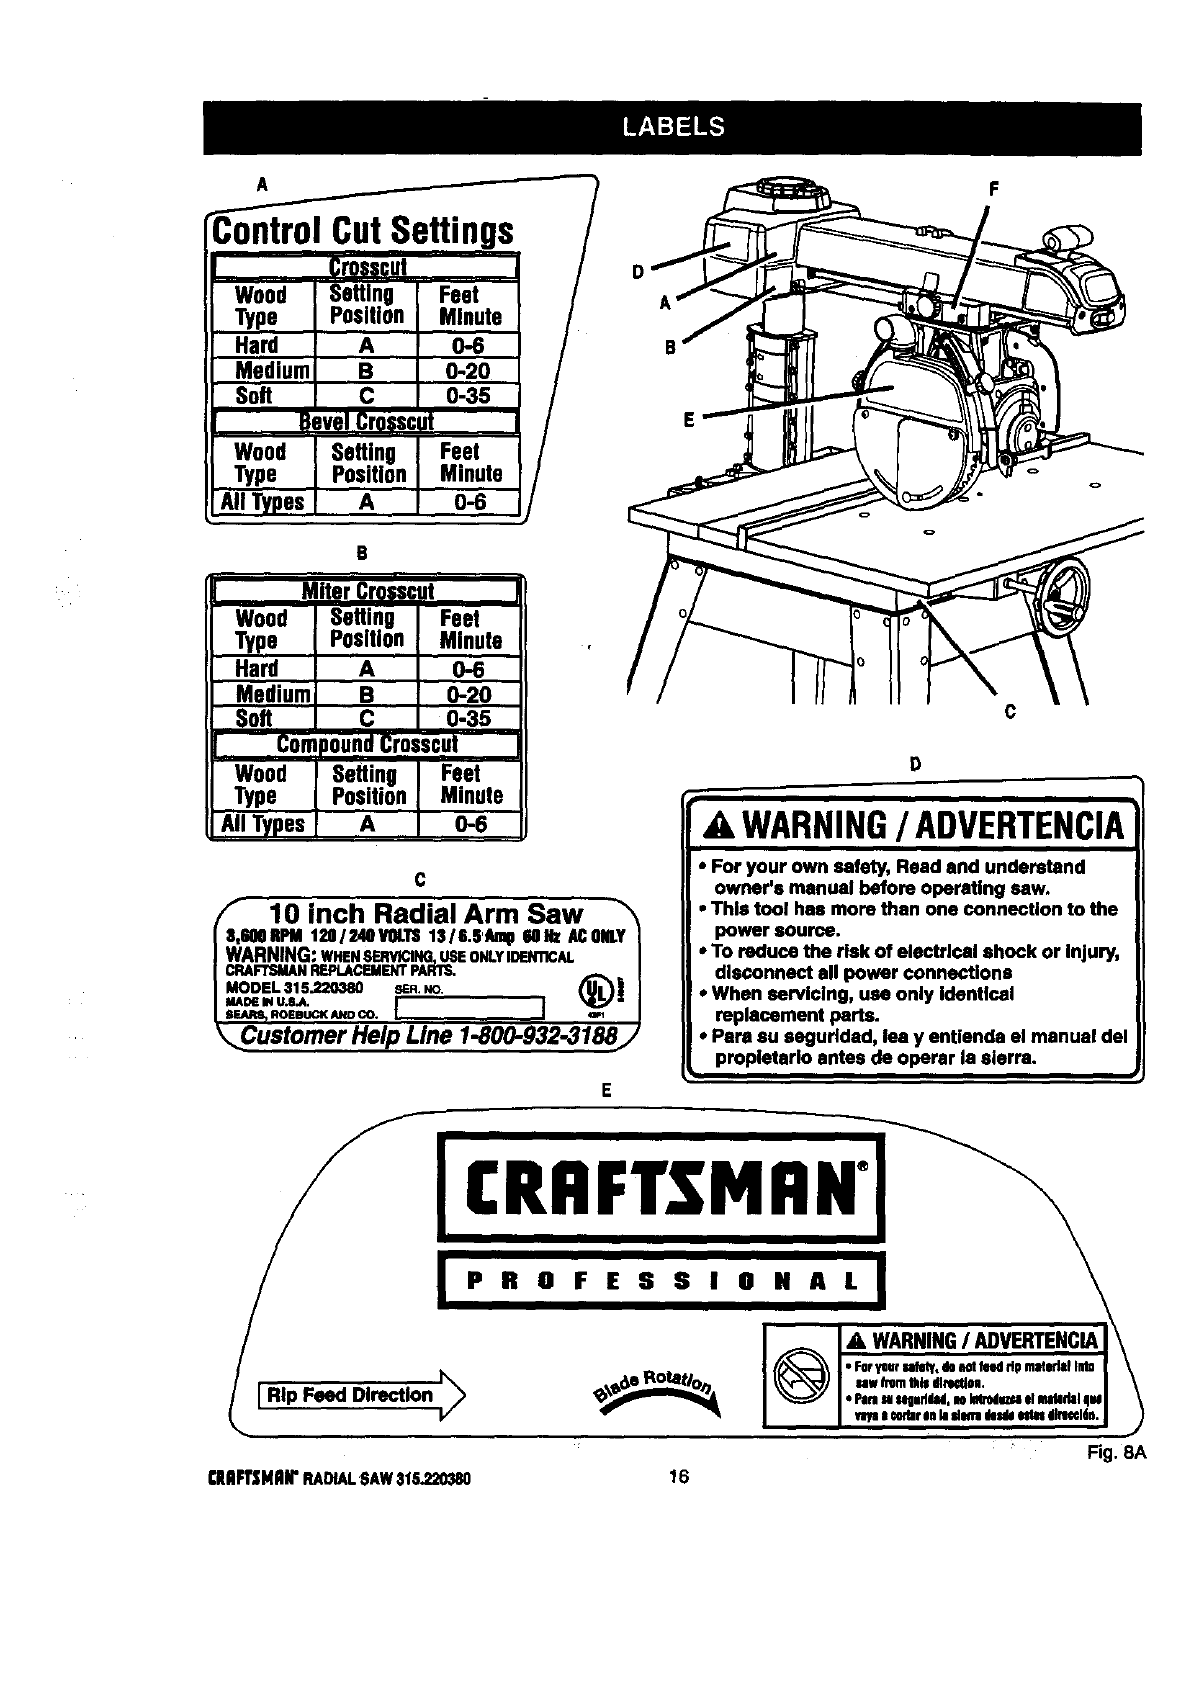 hight resolution of craftsman radial arm saw wiring diagram free picture wiring library rh 99 mac happen de craftsman